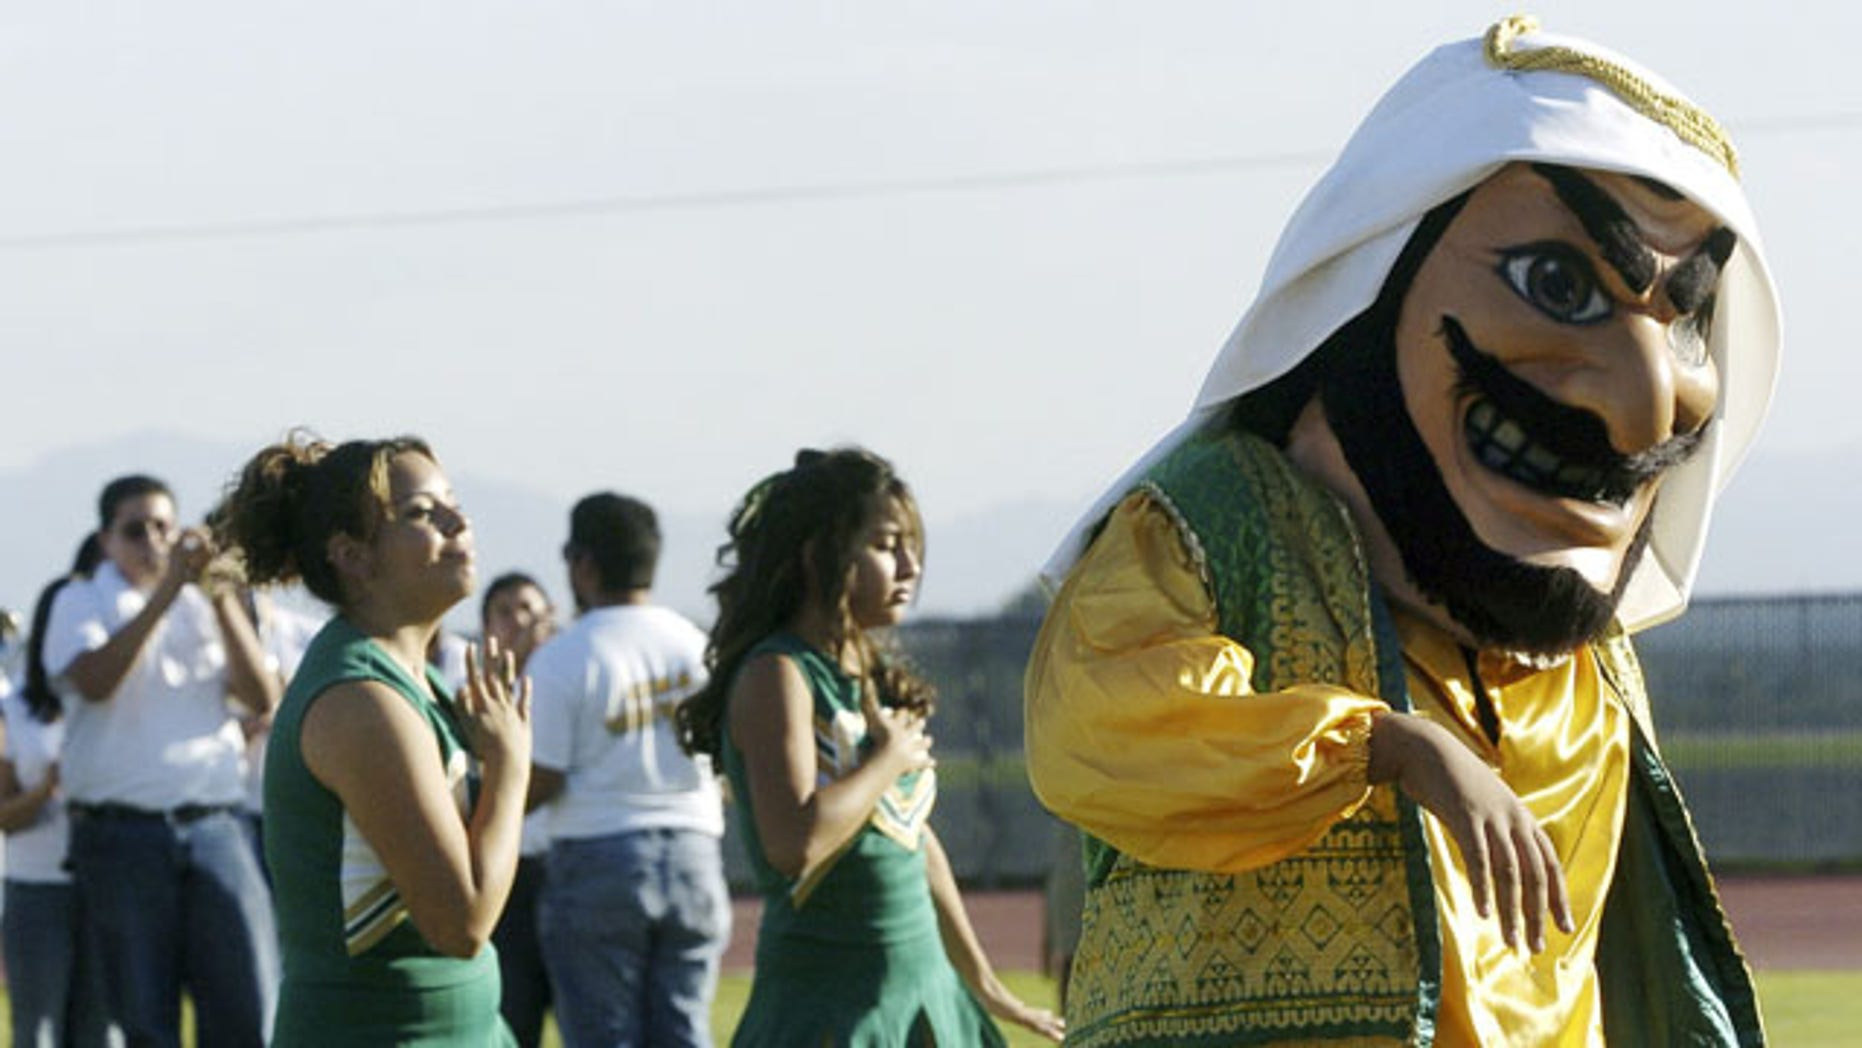 """FILE - In this Nov. 10, 2005 file photo, Coachella Valley High School's mascot, """"Arab,"""" dances to the band during a pep rally at the school in Thermal, Calif. School officials in Southern California say the """"Arabs"""" are here to stay, but the costumed mascot that represents them may be changing. (AP Photo/The Desert Sun, Marilyn Chung, File)"""